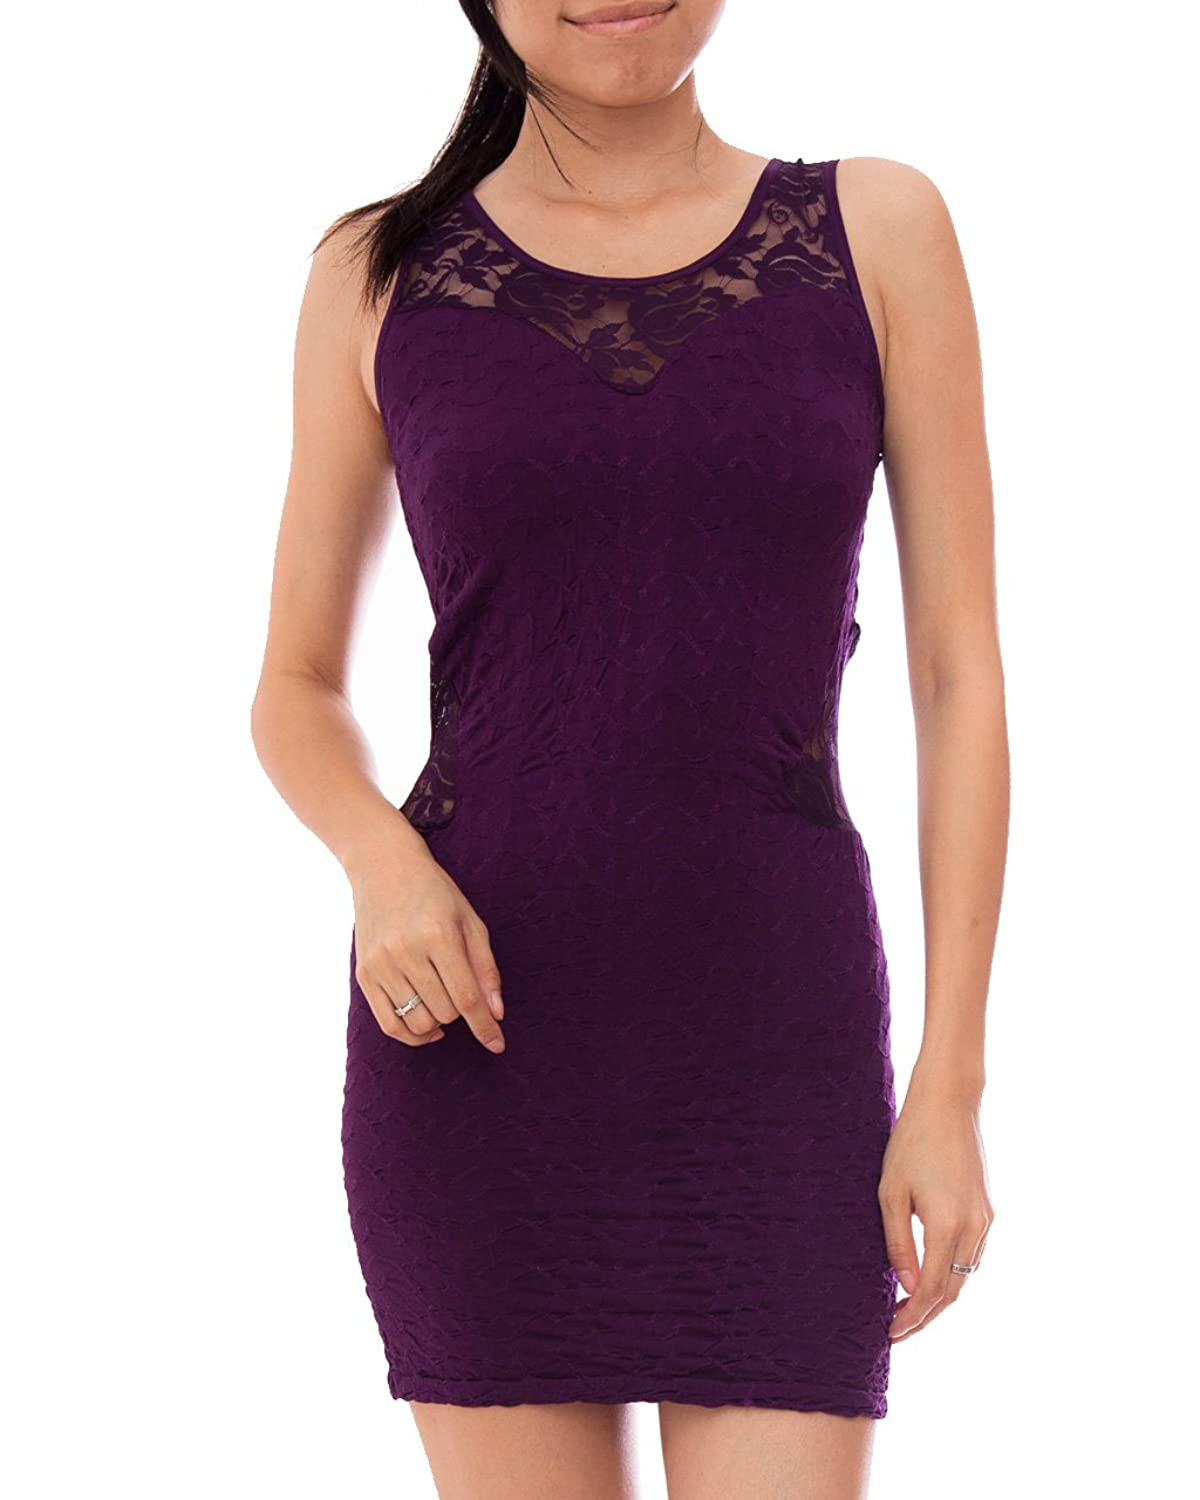 Purple Tank Dress Floral Laced Neck Back and Sides, Decorative Stitching